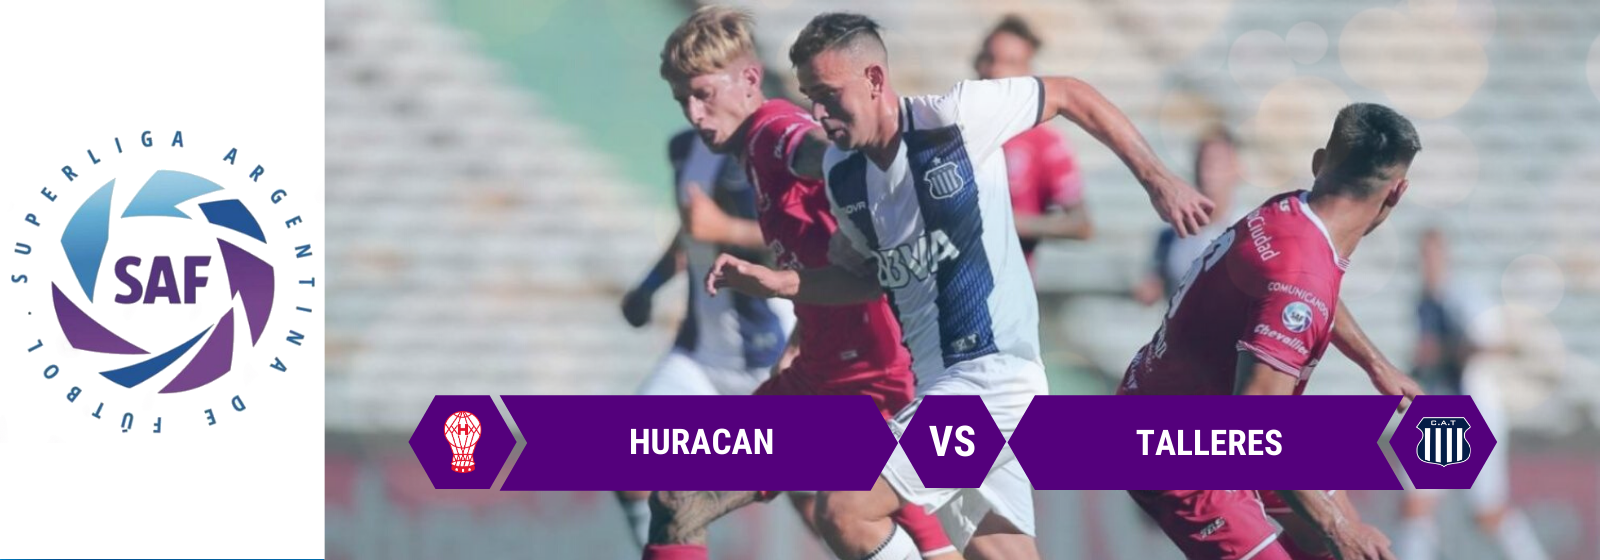 Asianconnect: Huracan vs Talleres Odds for March 15, 2020